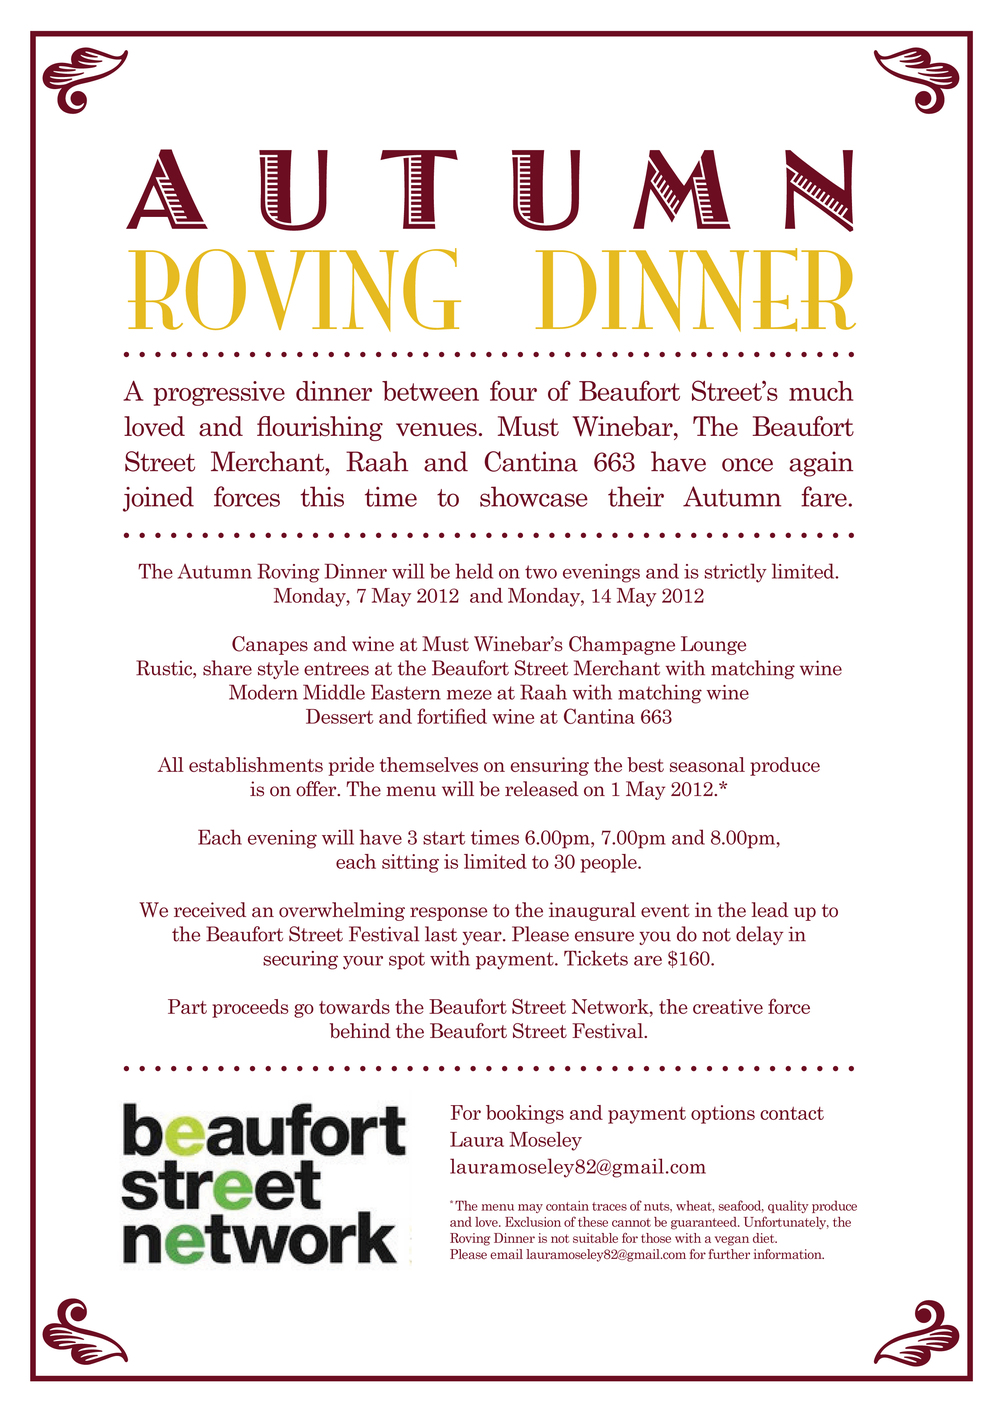 Autumn Roving Dinner information.jpg